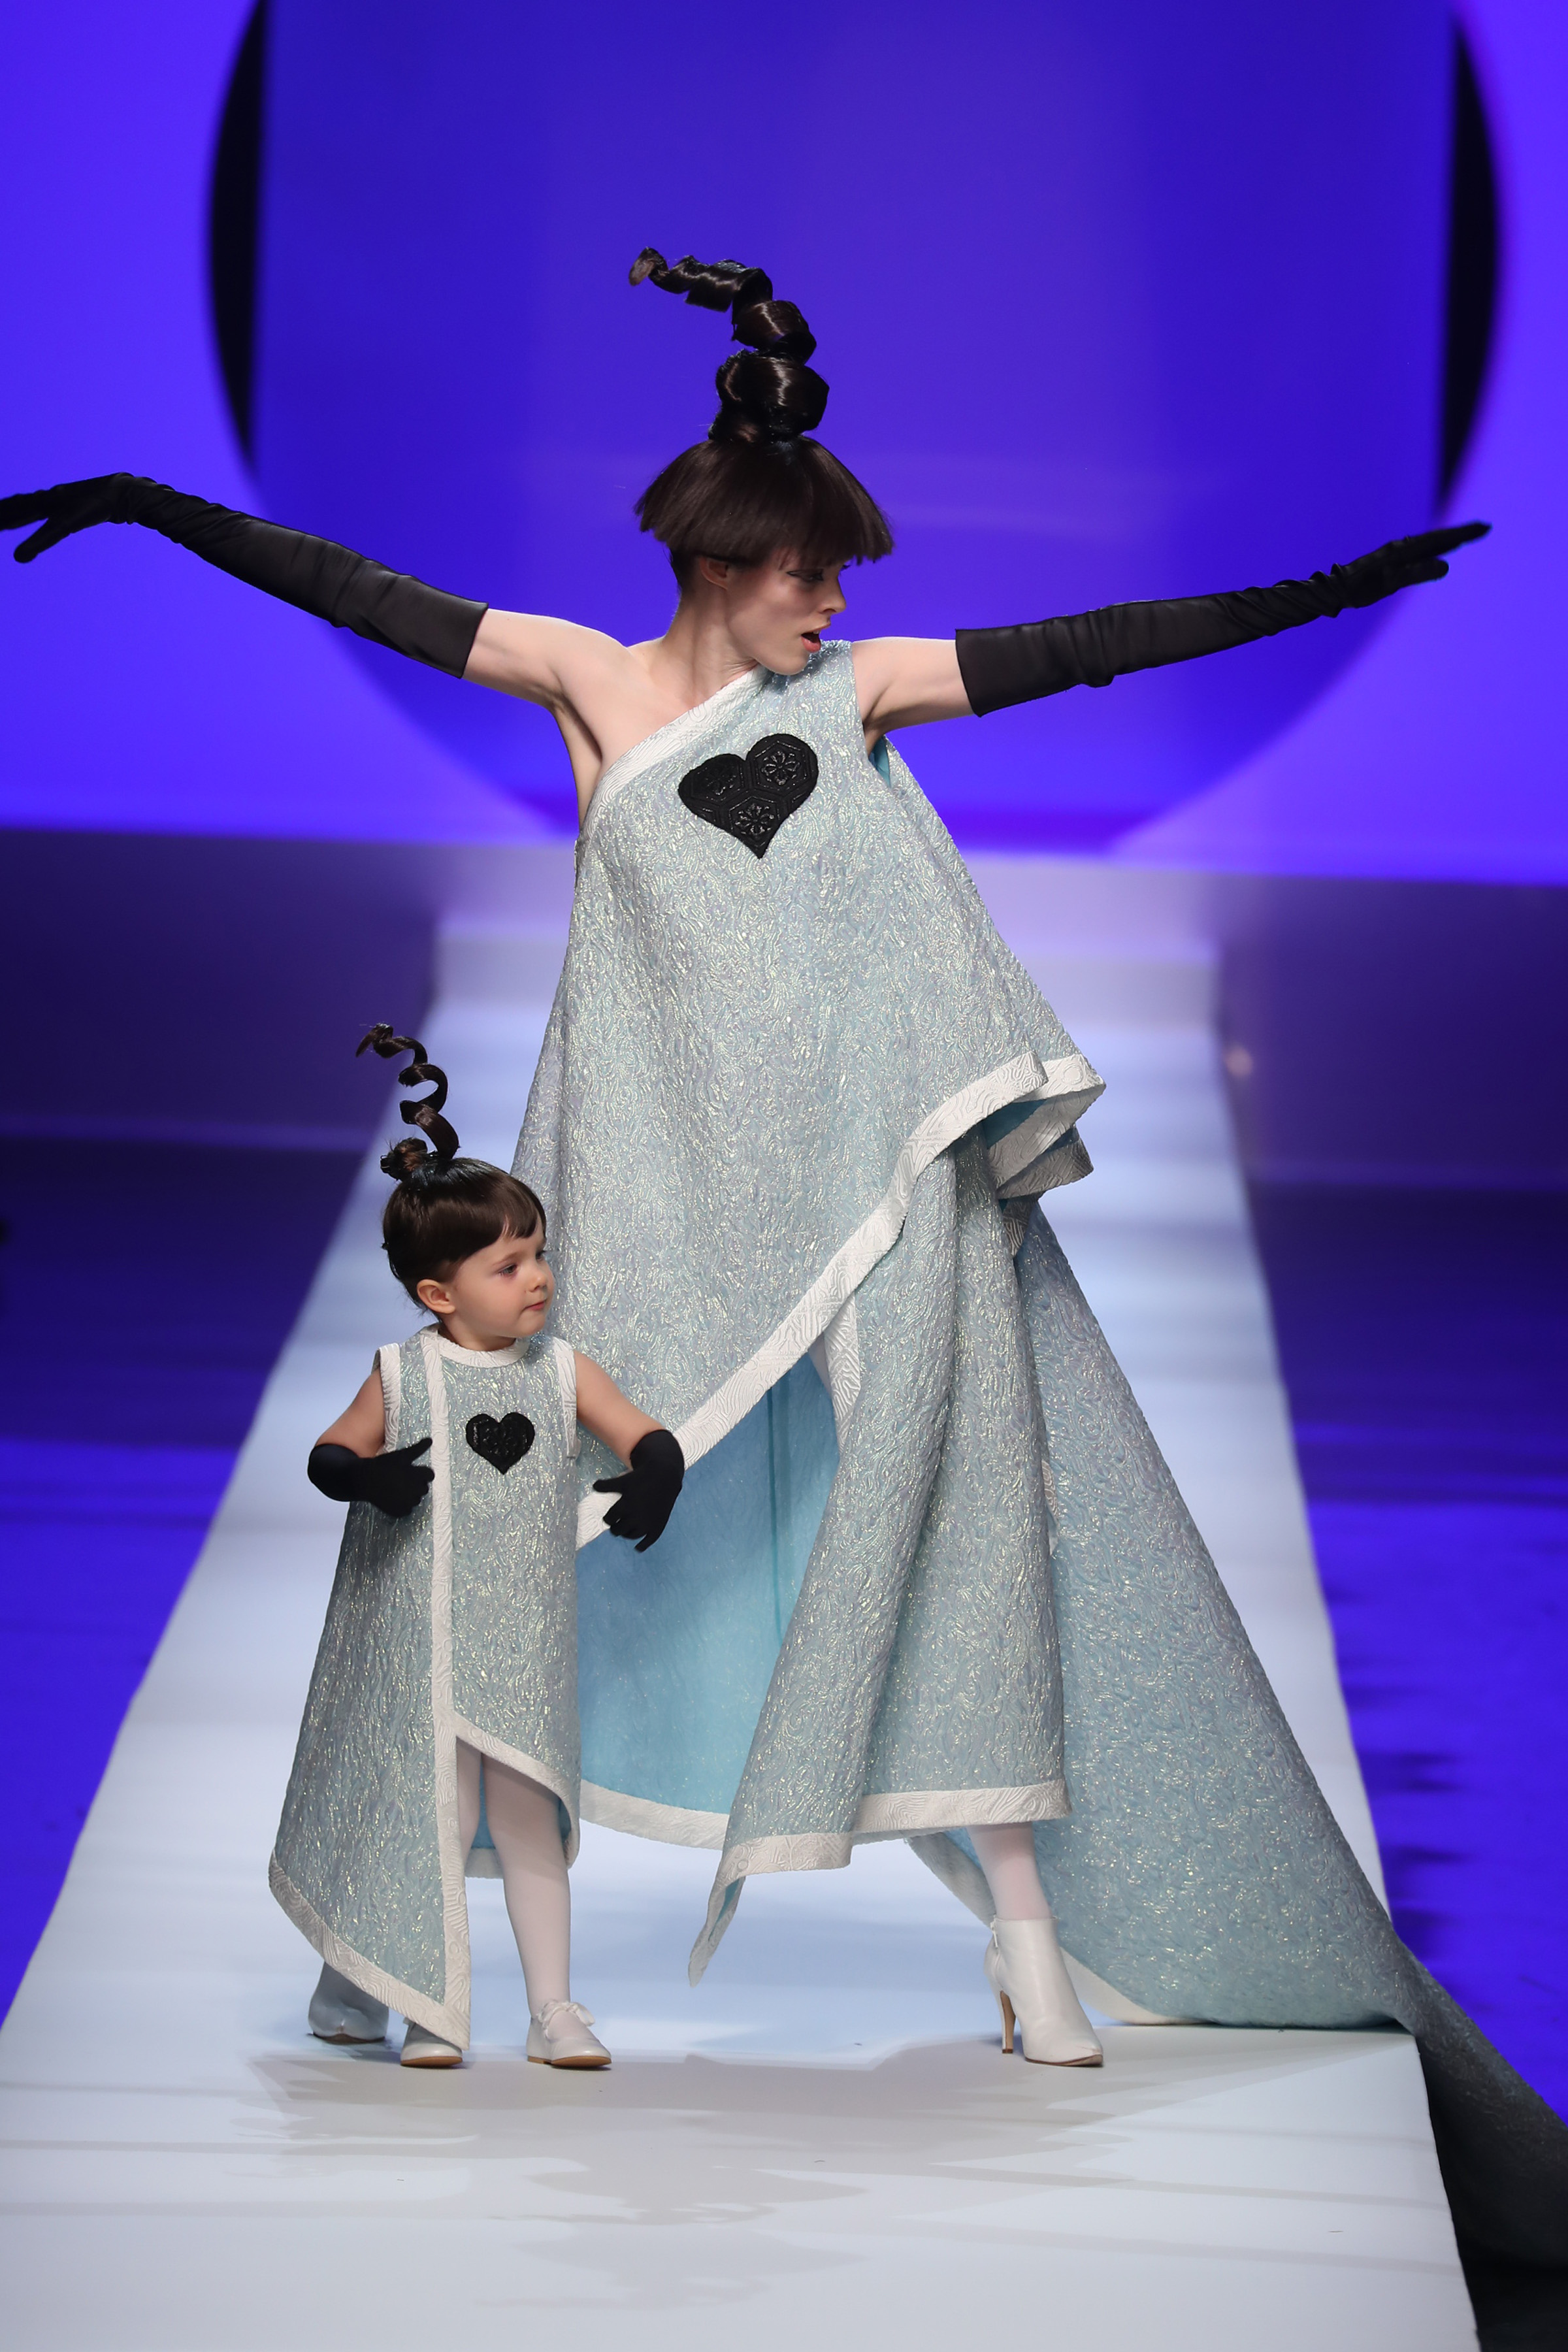 Paris/France - January 24 2018: A model walks the runway at the JEAN PAUL GAULTIER show during Paris Haute Couture Fashion Week S/S 2018 on January 24, 2018 in Paris, France. <P> Pictured: Coco Rocha <B>Ref: SPL1650124  240118  </B><BR/> Picture by: Antonio Barros / Splash News<BR/> </P><P> <B>Splash News and Pictures</B><BR/> Los Angeles:310-821-2666<BR/> New York:212-619-2666<BR/> London:870-934-2666<BR/> <span id=